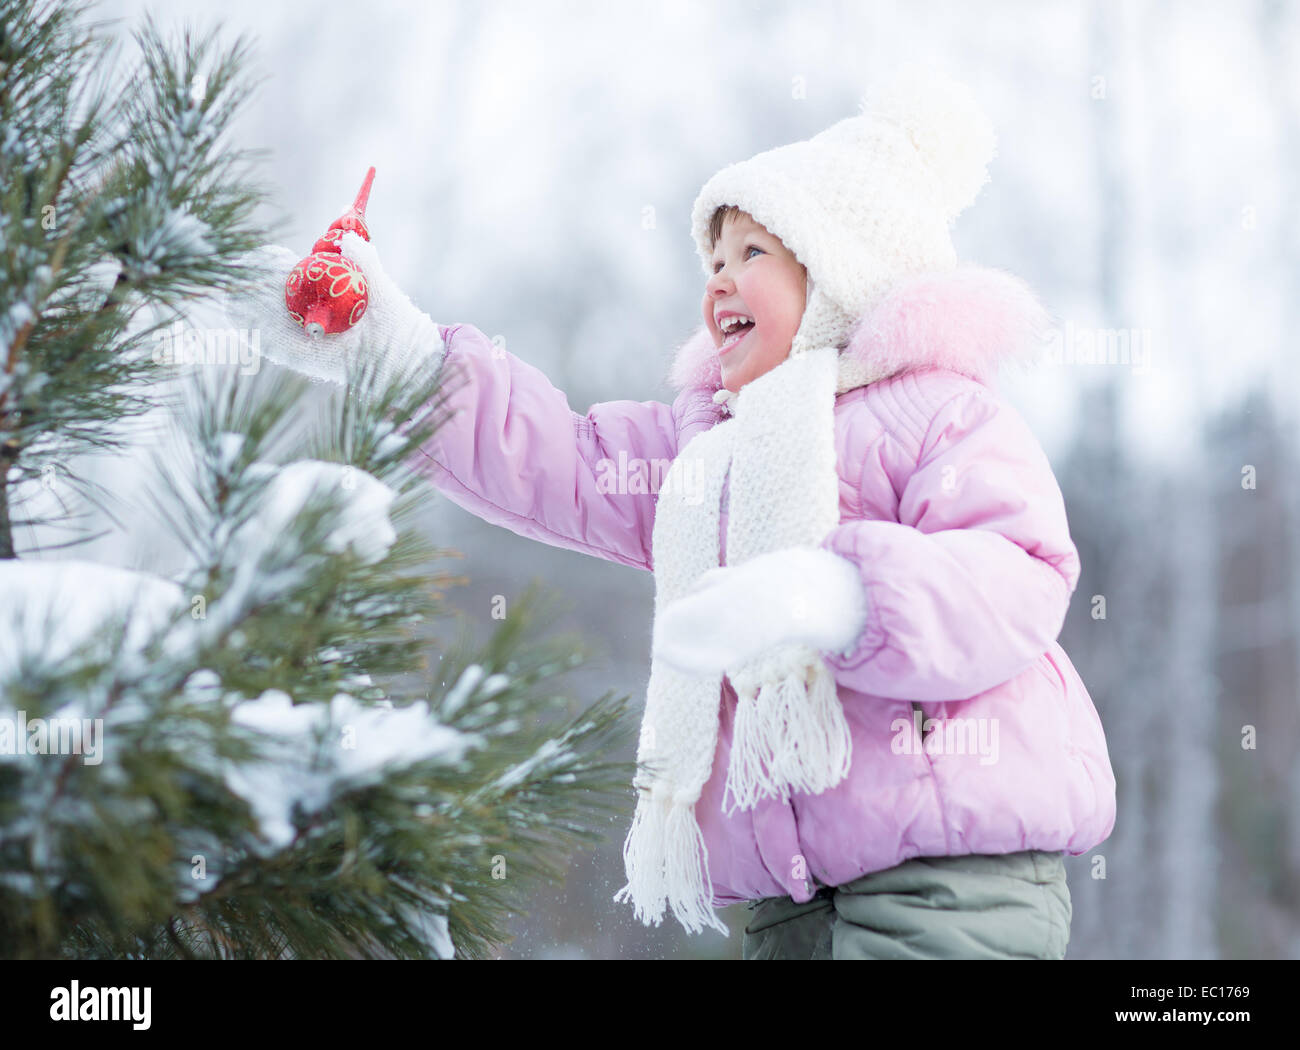 Happy kid making Christmas Tree decorations outdoor Photo Stock